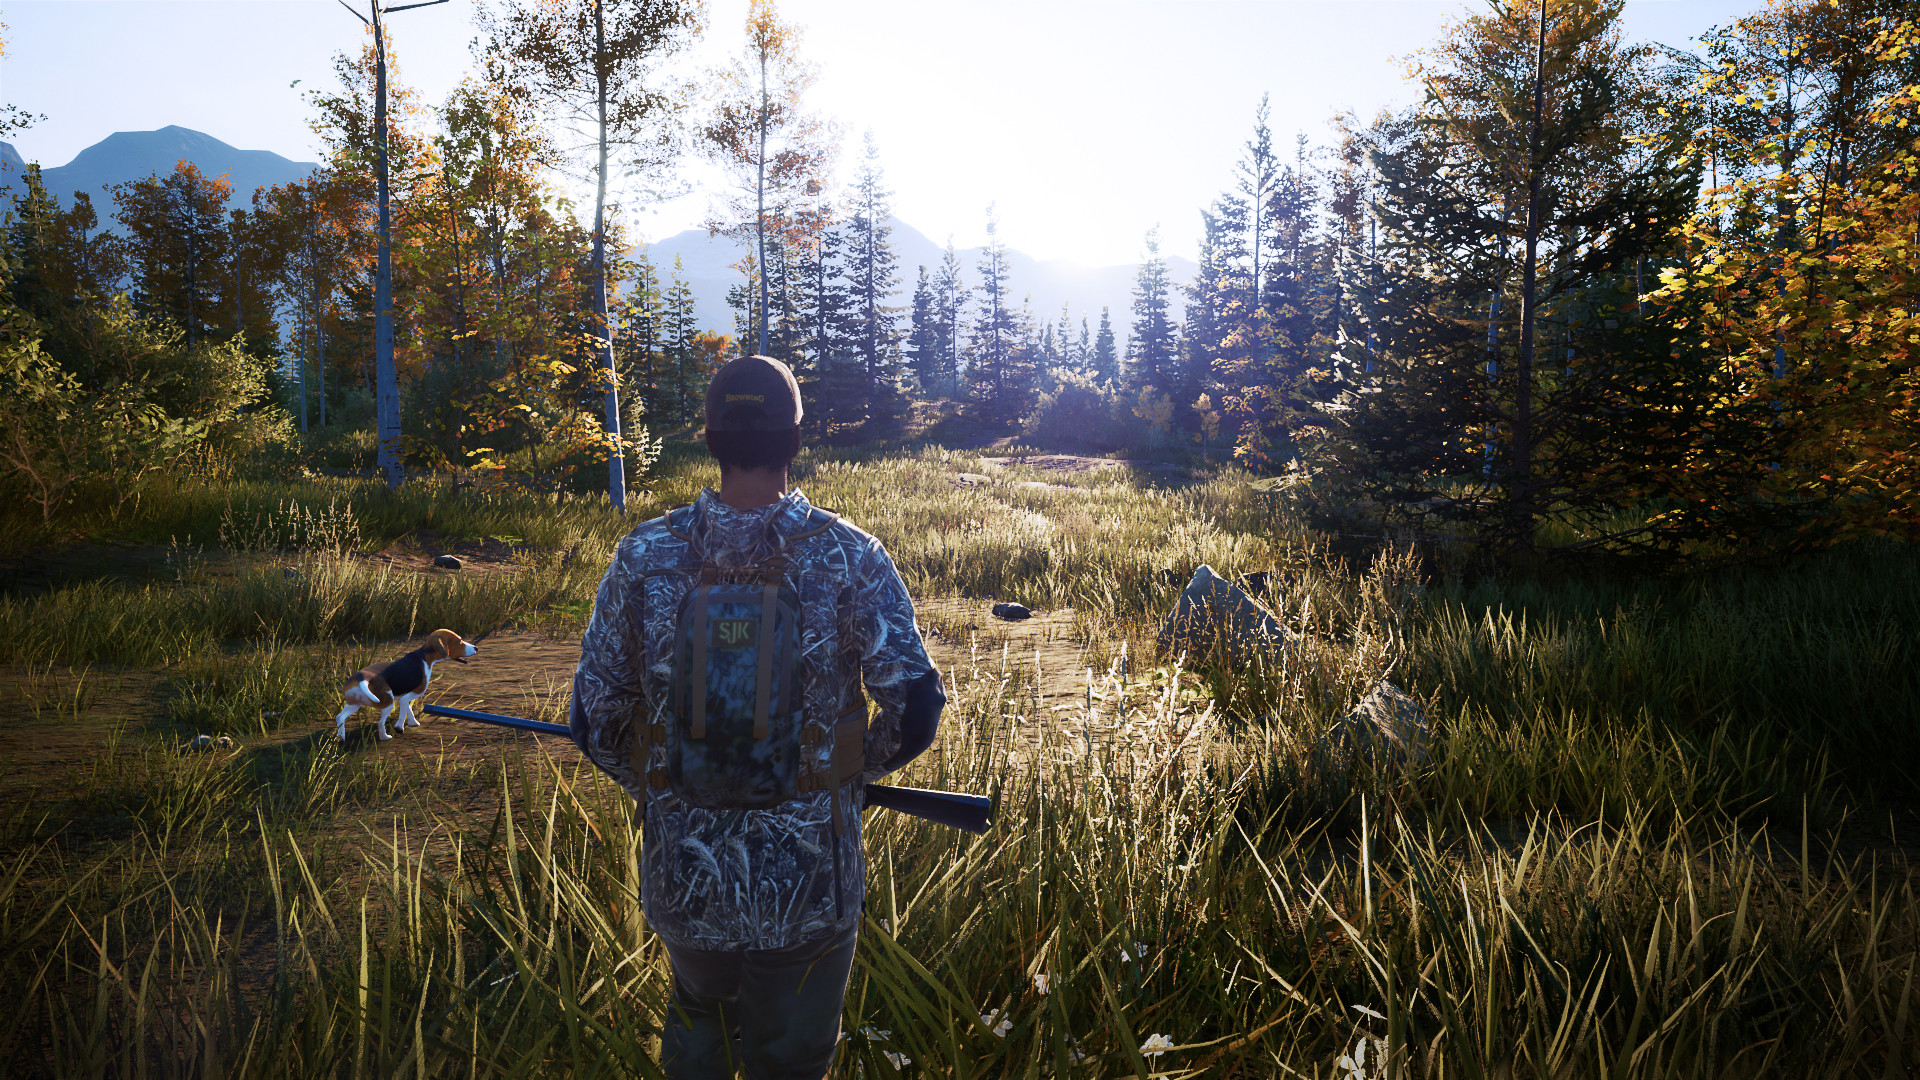 Hunting Simulator 2 on Steam